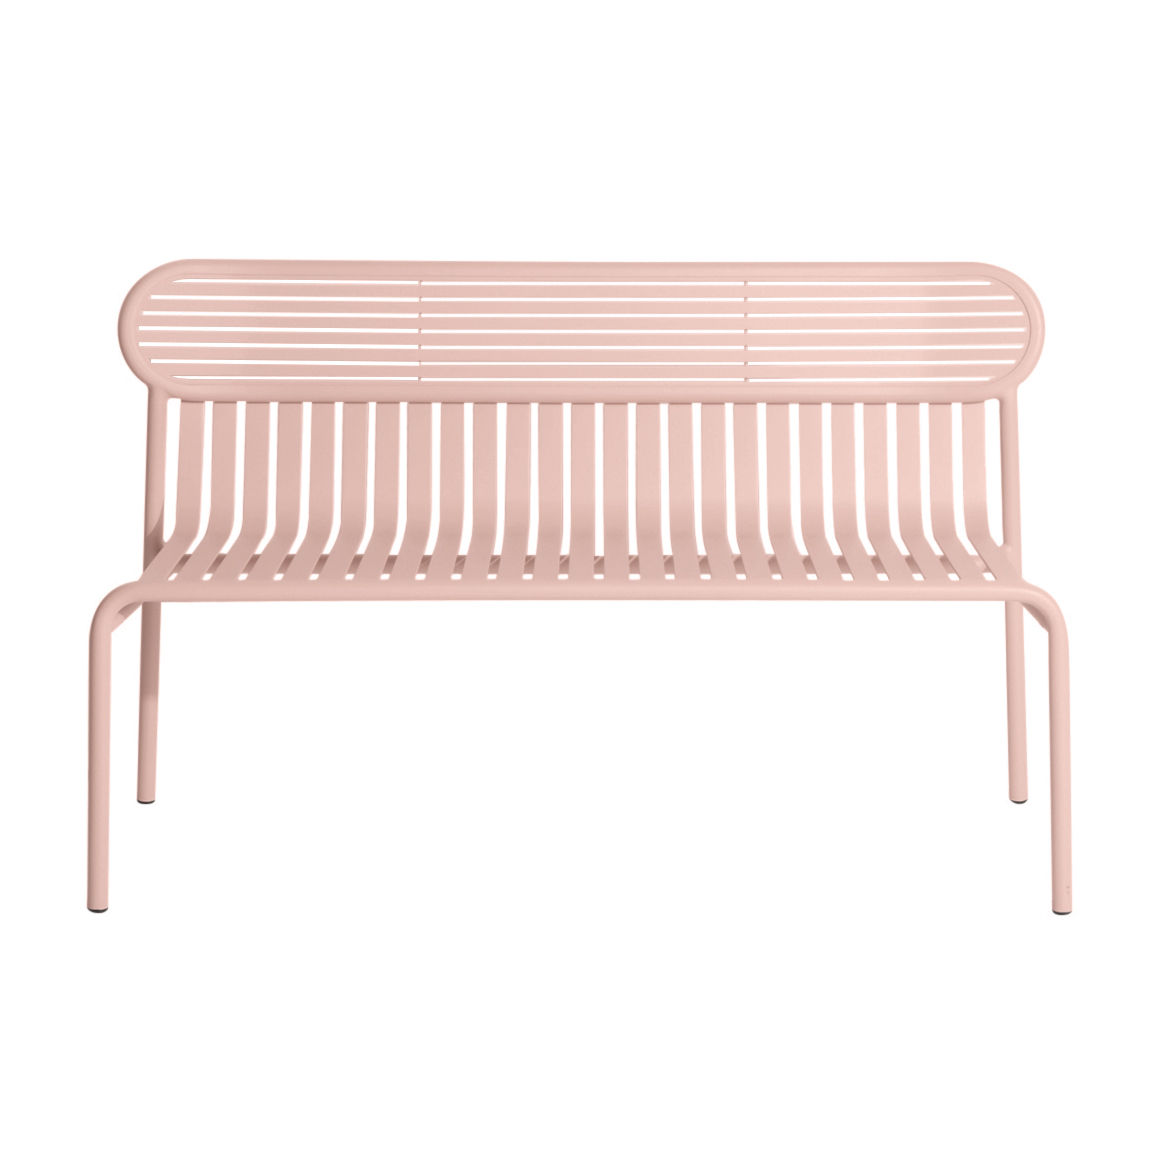 Furniture - Benches - Week-End Bench with backrest - / Aluminium - L 121 cm by Petite Friture - Blush pink - Powder coated epoxy aluminium